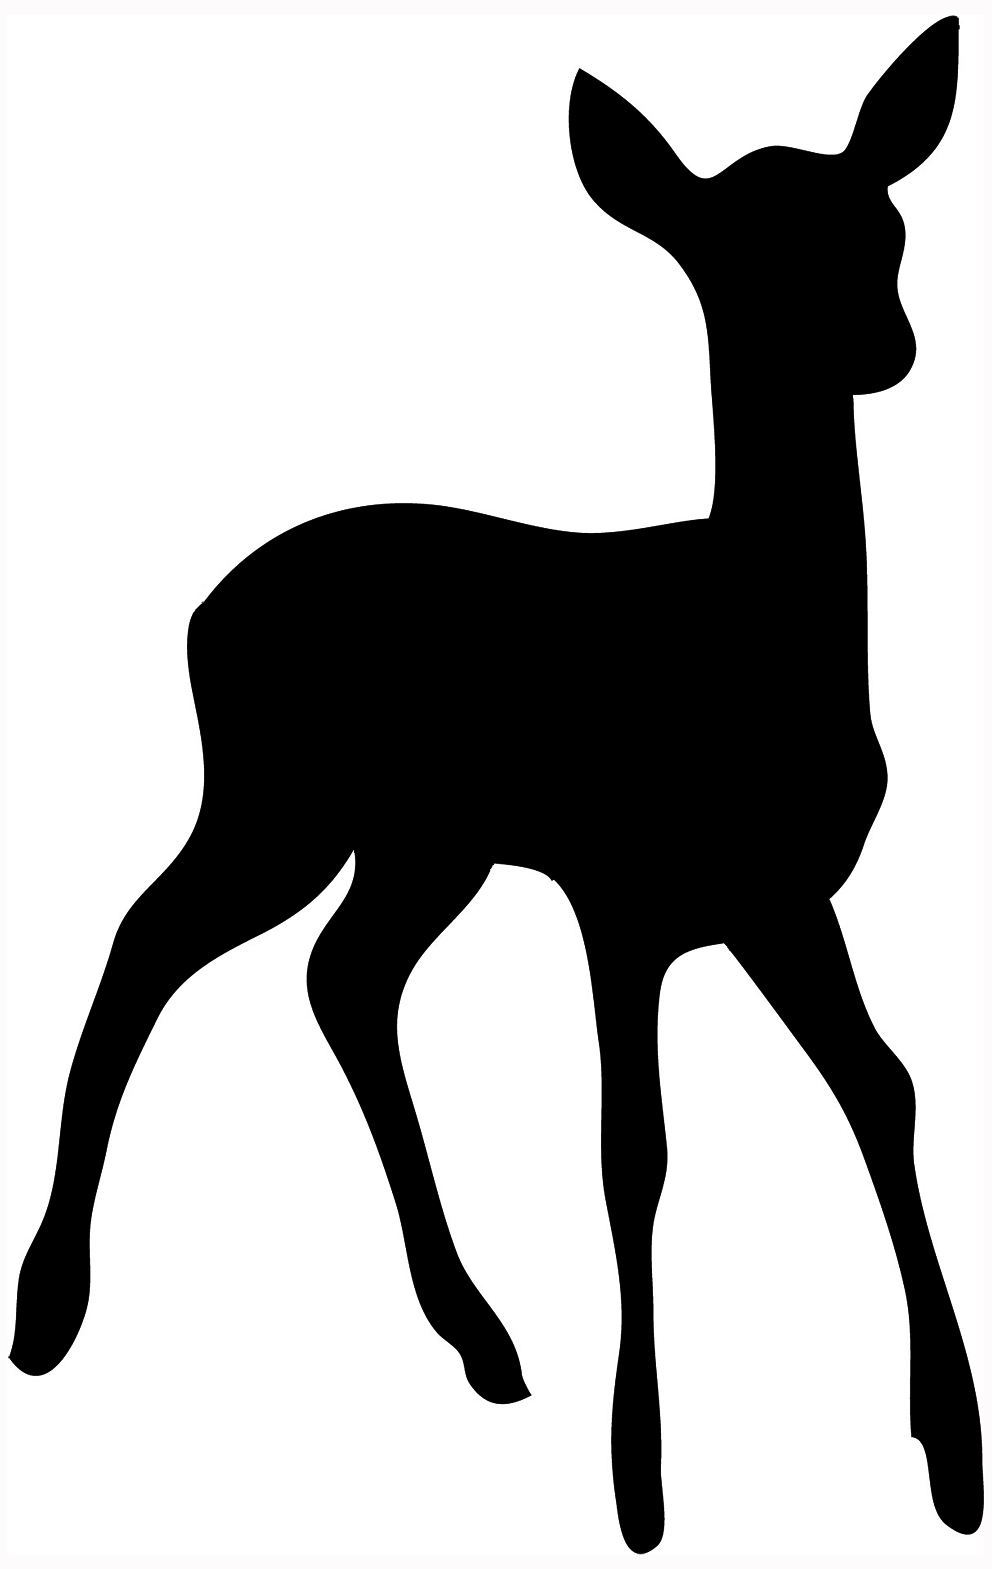 Deer clipart silhouette. Head template at getdrawings